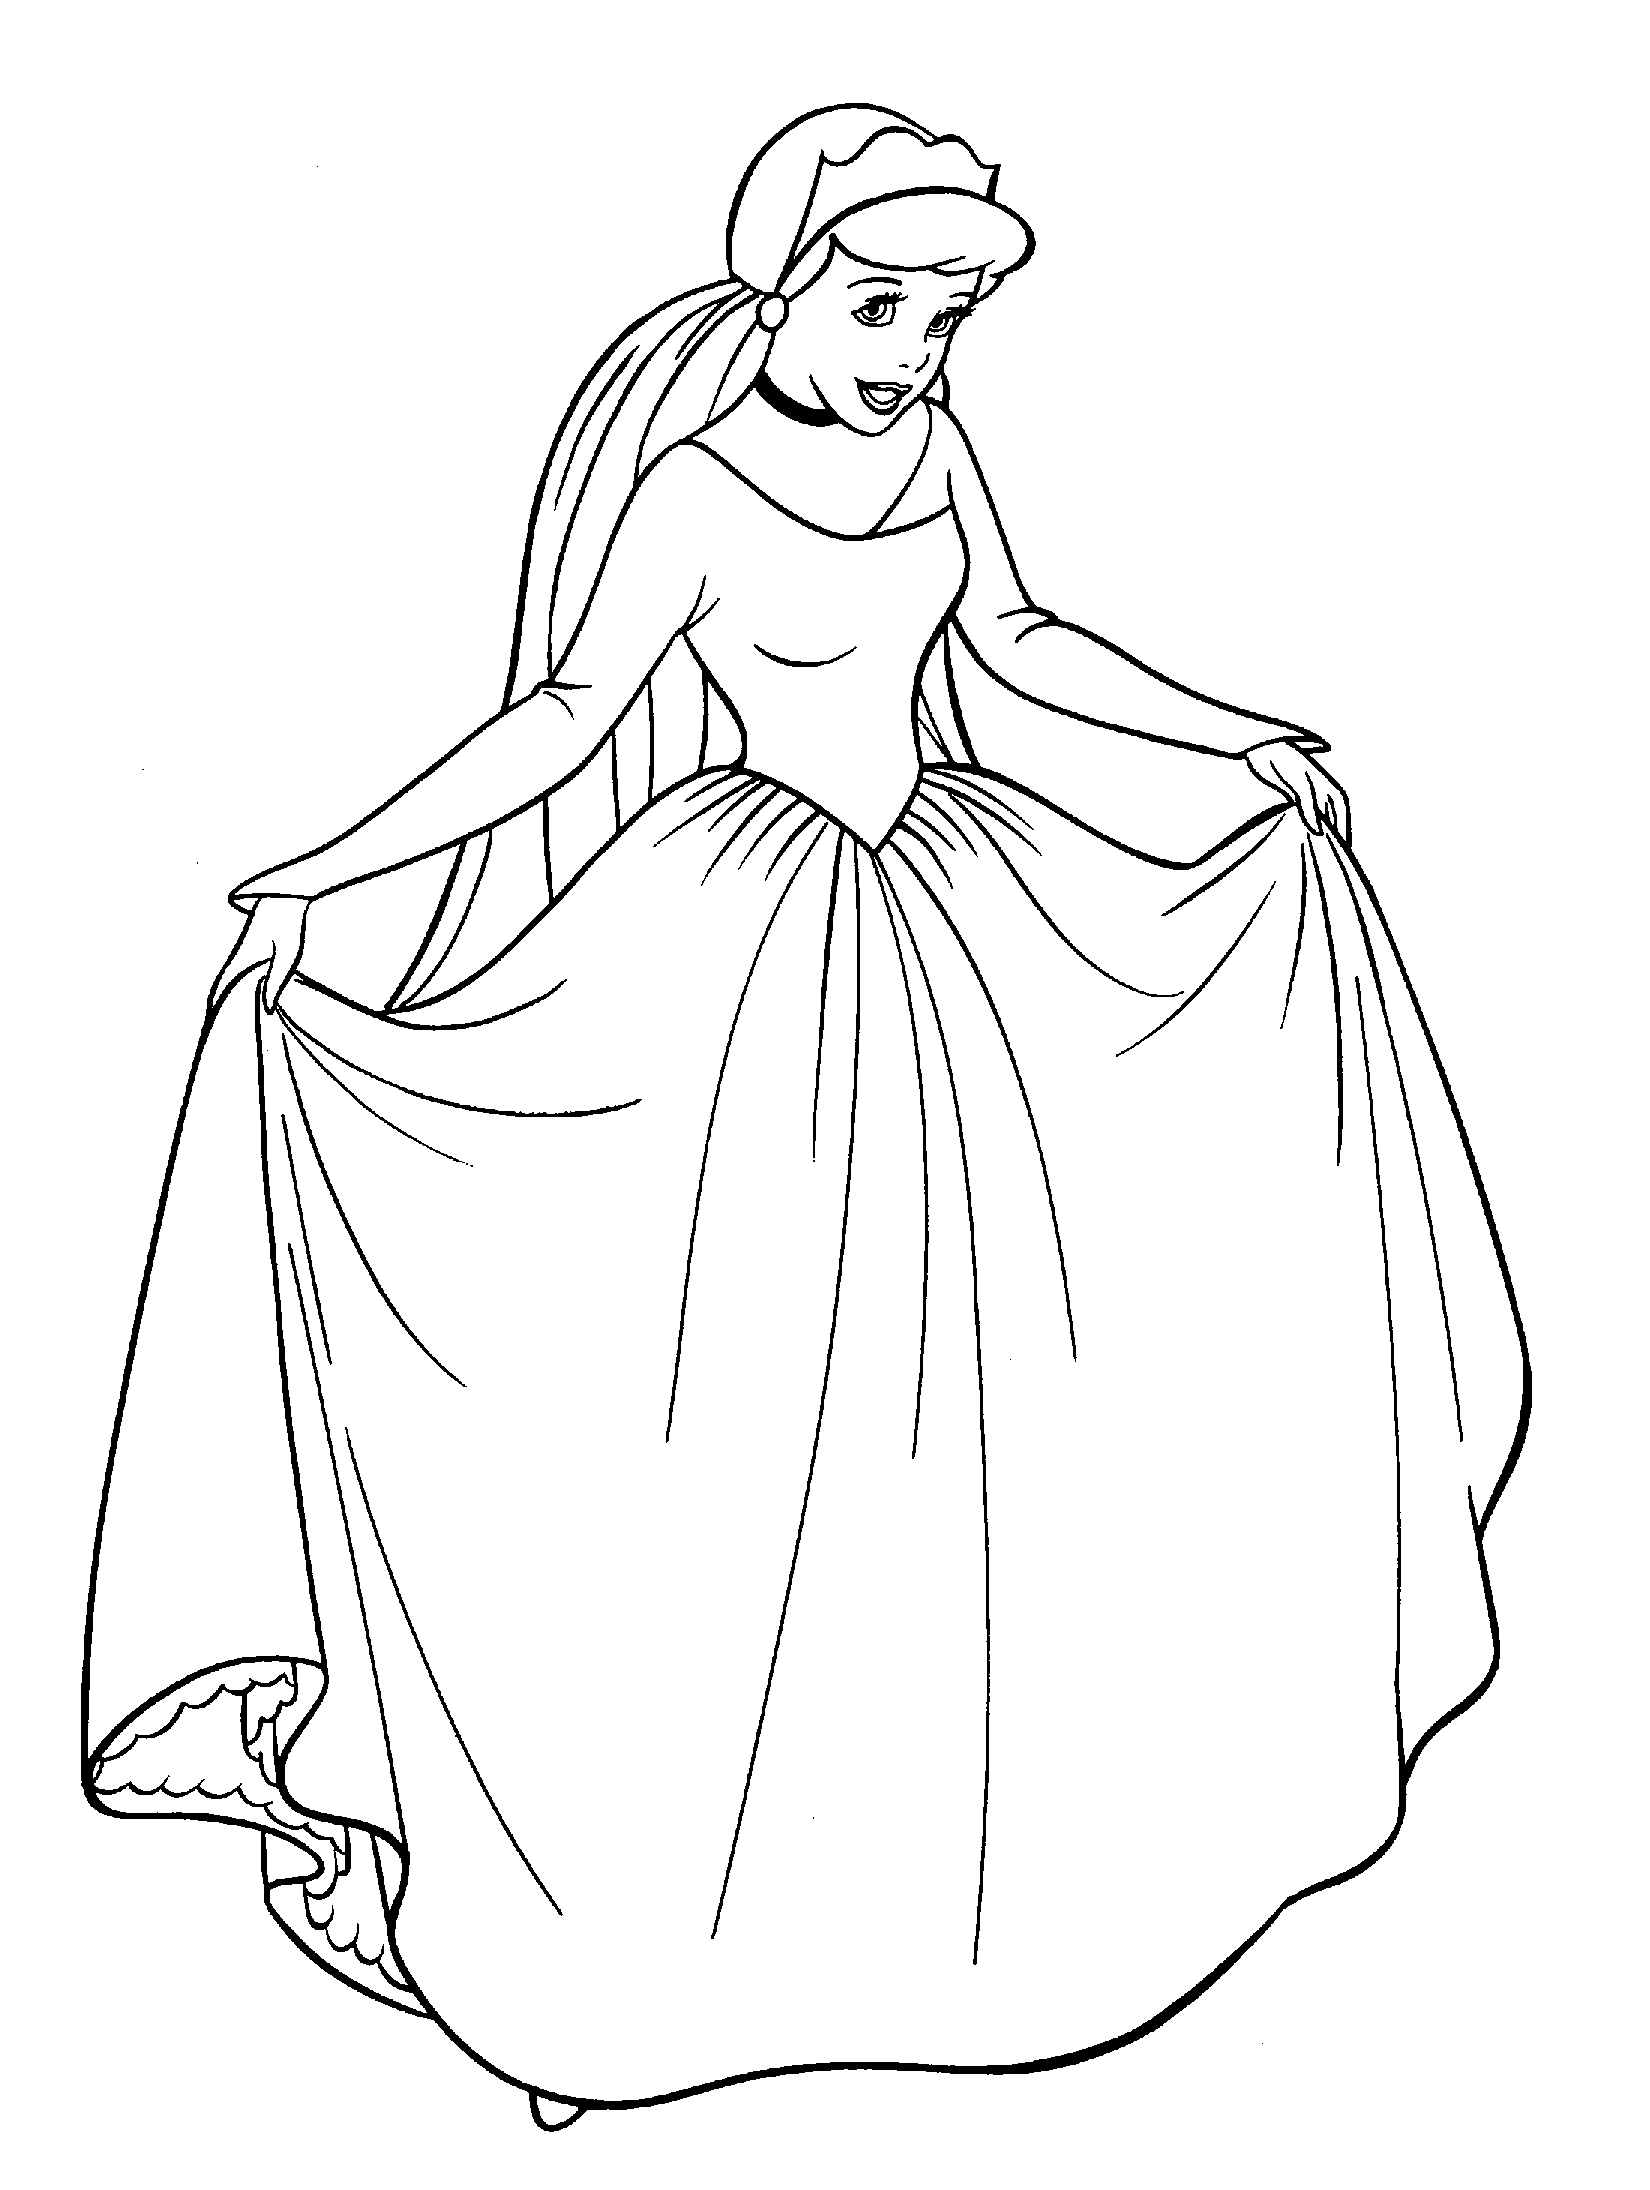 cinderella drawing for coloring how to draw cinderella step by step pictures cool2bkids for coloring cinderella drawing